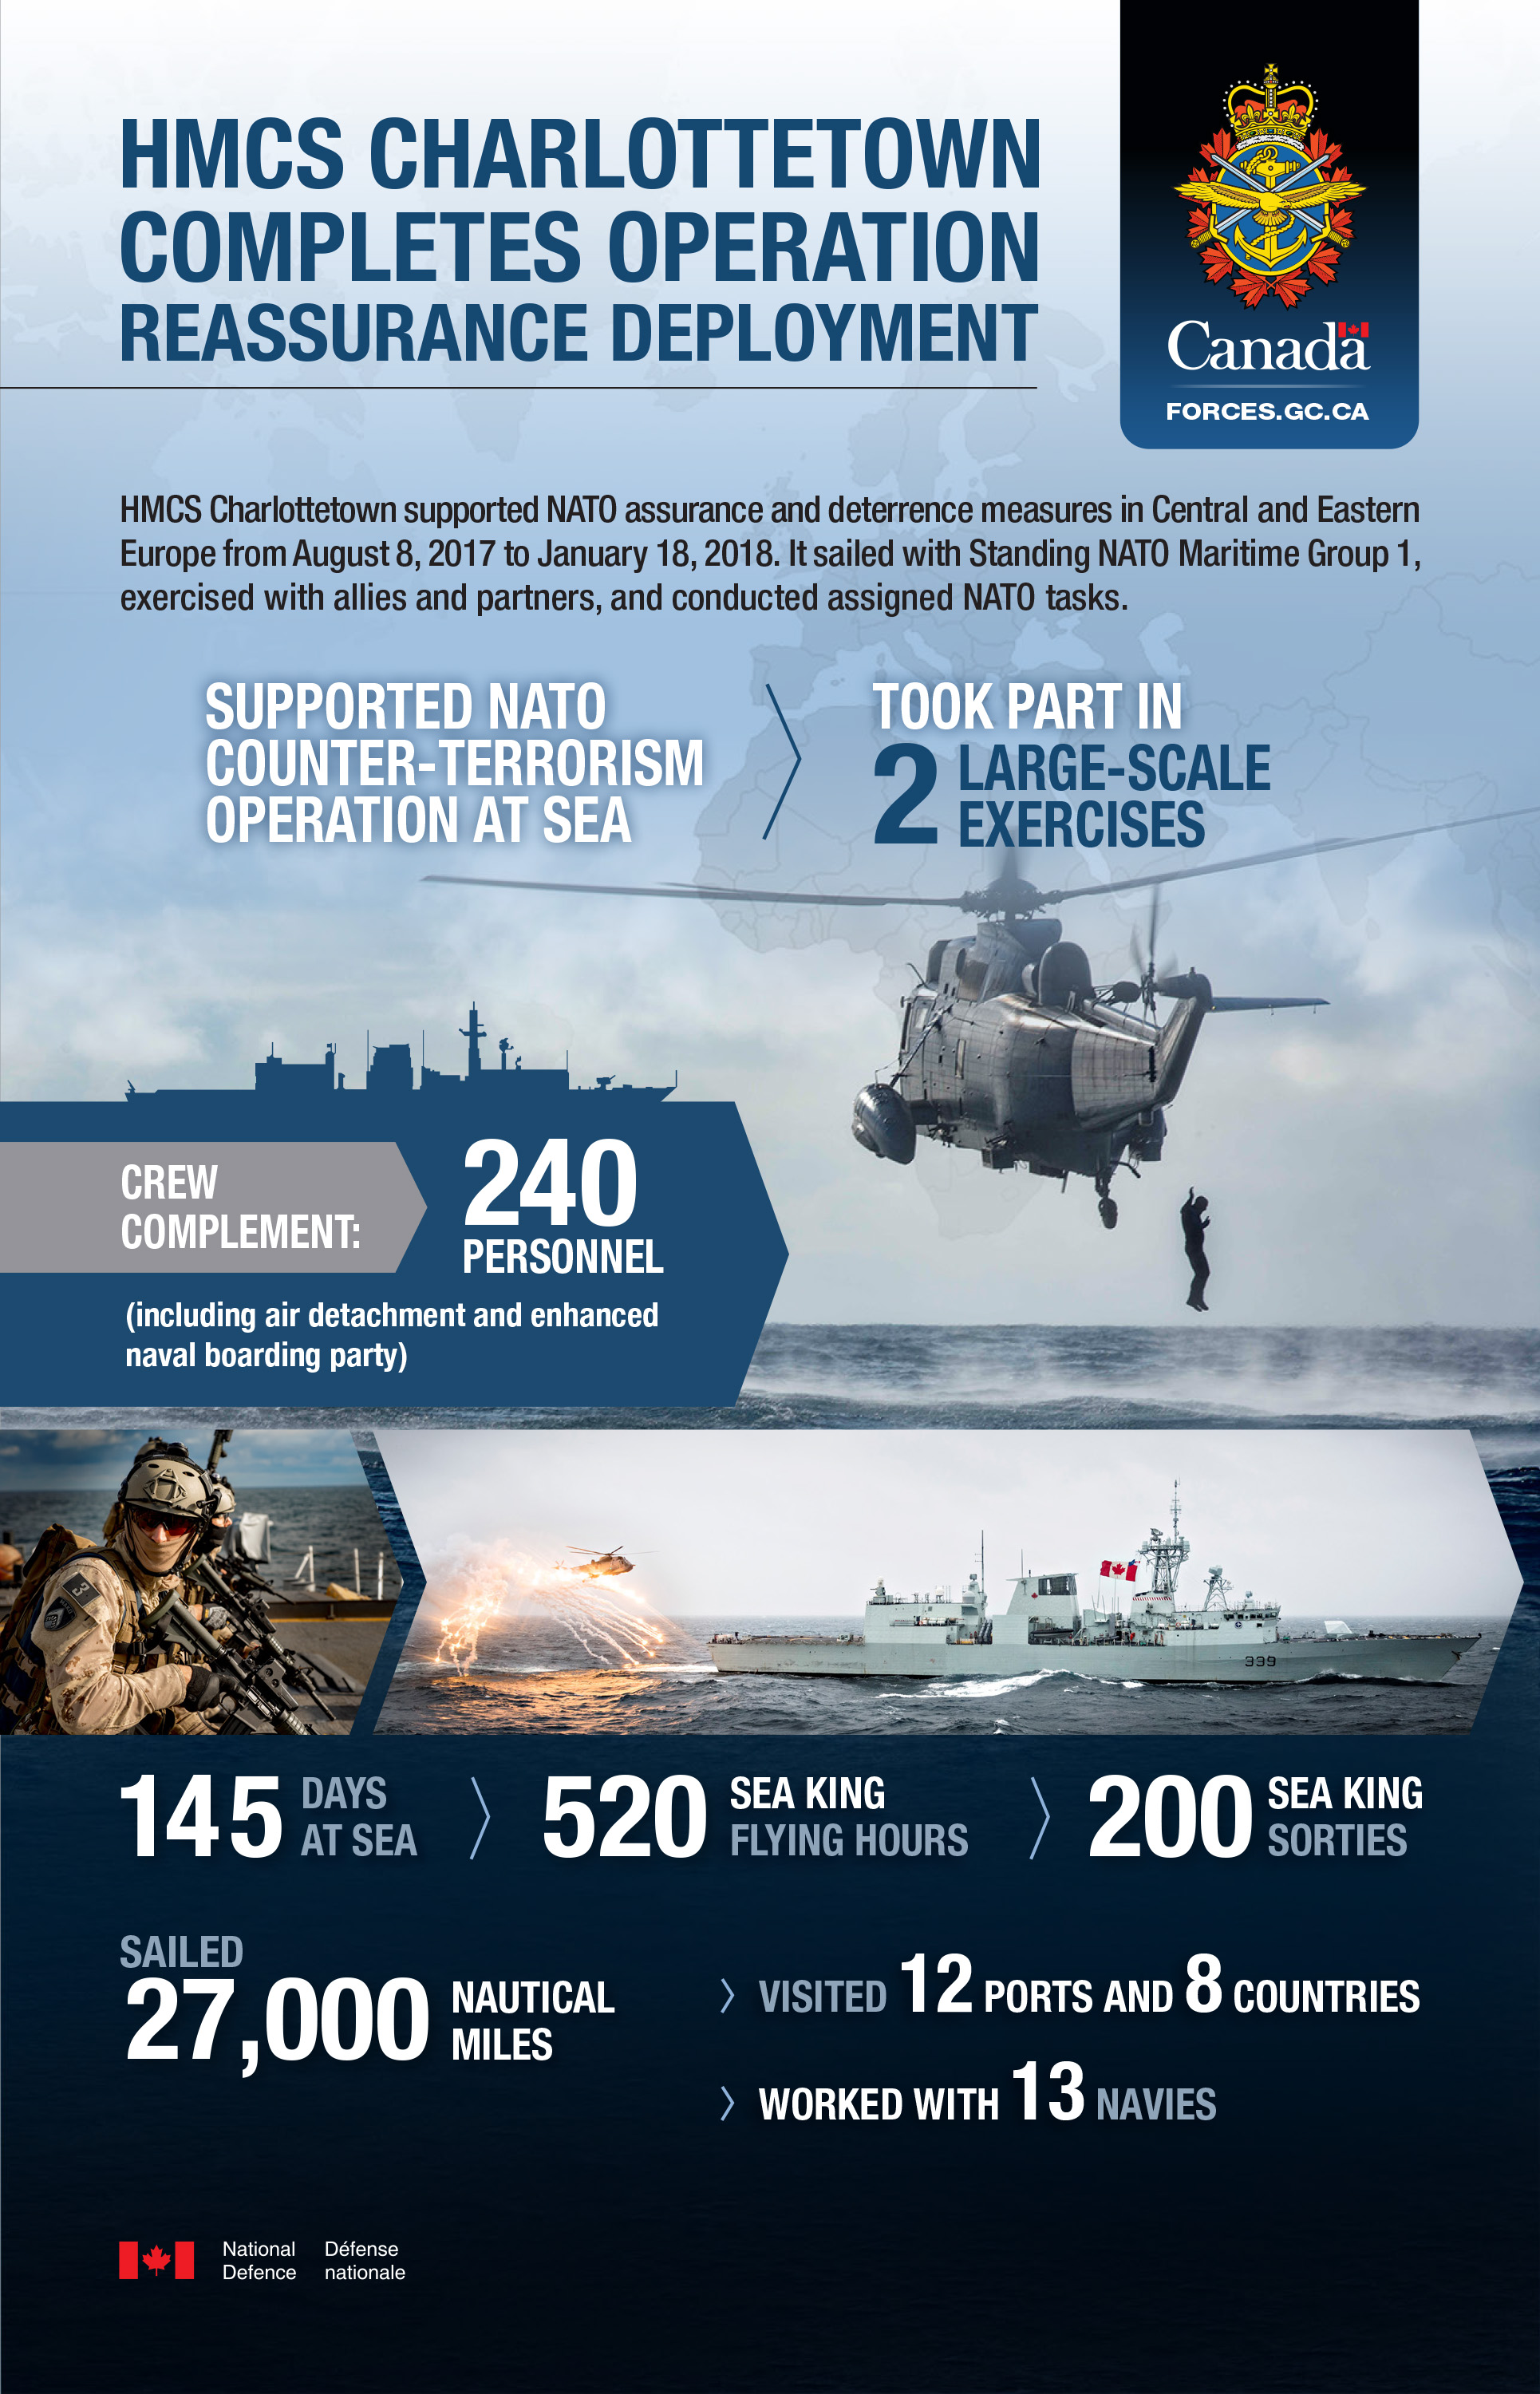 Infographic with a blue background. At the top of the infographic there is the Canadian Armed Forces emblem as well as the title: HMCS Charlottetown completes Operation REASSURANCE deployment. Below that there is text: HMCS Charlottetown supported NATO assurance and deterrence measures in Central and Eastern Europe from August 8, 2017 to January 18, 2018. It sailed with Standing NATO Maritime Group 1, exercised with allies and partners, and conducted assigned NATO tasks. Supported NATO counter-terrorism operation at sea; took part in 2 large-scale exercises. Below that there is an image of a Sea King helicopter in-flight, from which a sailor jumps into the water. Below that there is more text: Crew complement: 240 personnel (including air detachment and enhanced naval boarding party). Below that, there is an image of a sailor with a firearm on board a ship. Next to that, there is an image of HMCS Charlottetown sailing while a Sea King helicopter in-flight creates flares. Below that, there is additional text: 145 days at sea; 520 Sea King flying hours; 200 Sea King sorties. Sailed 27,000 nautical miles; visited 12 ports and 8 countries; worked with 13 navies. In the bottom left corner of the infographic there is a Canadian flag followed by text: National Defence; Défense nationale.